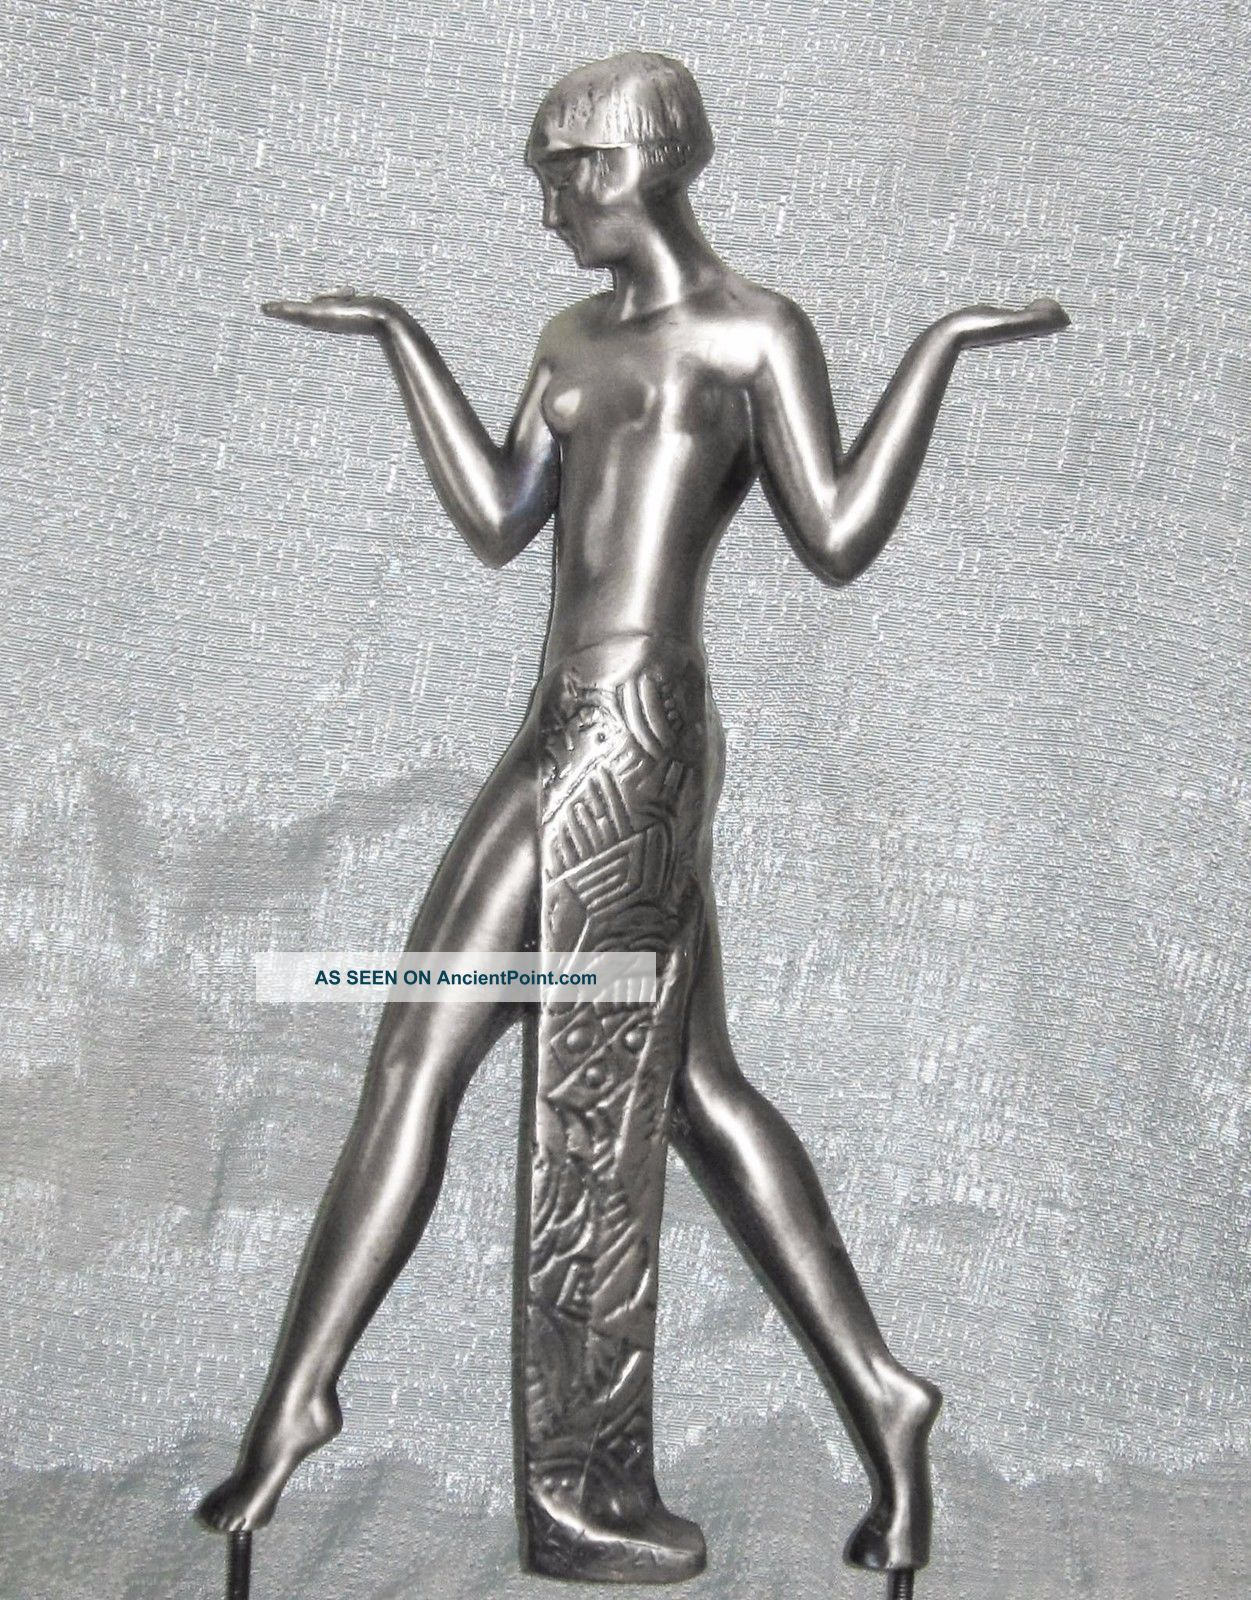 Guerbe Max Le Verrier Lamp Casting Aluminum Art Deco Egyptian Lamp Usa Art Deco photo